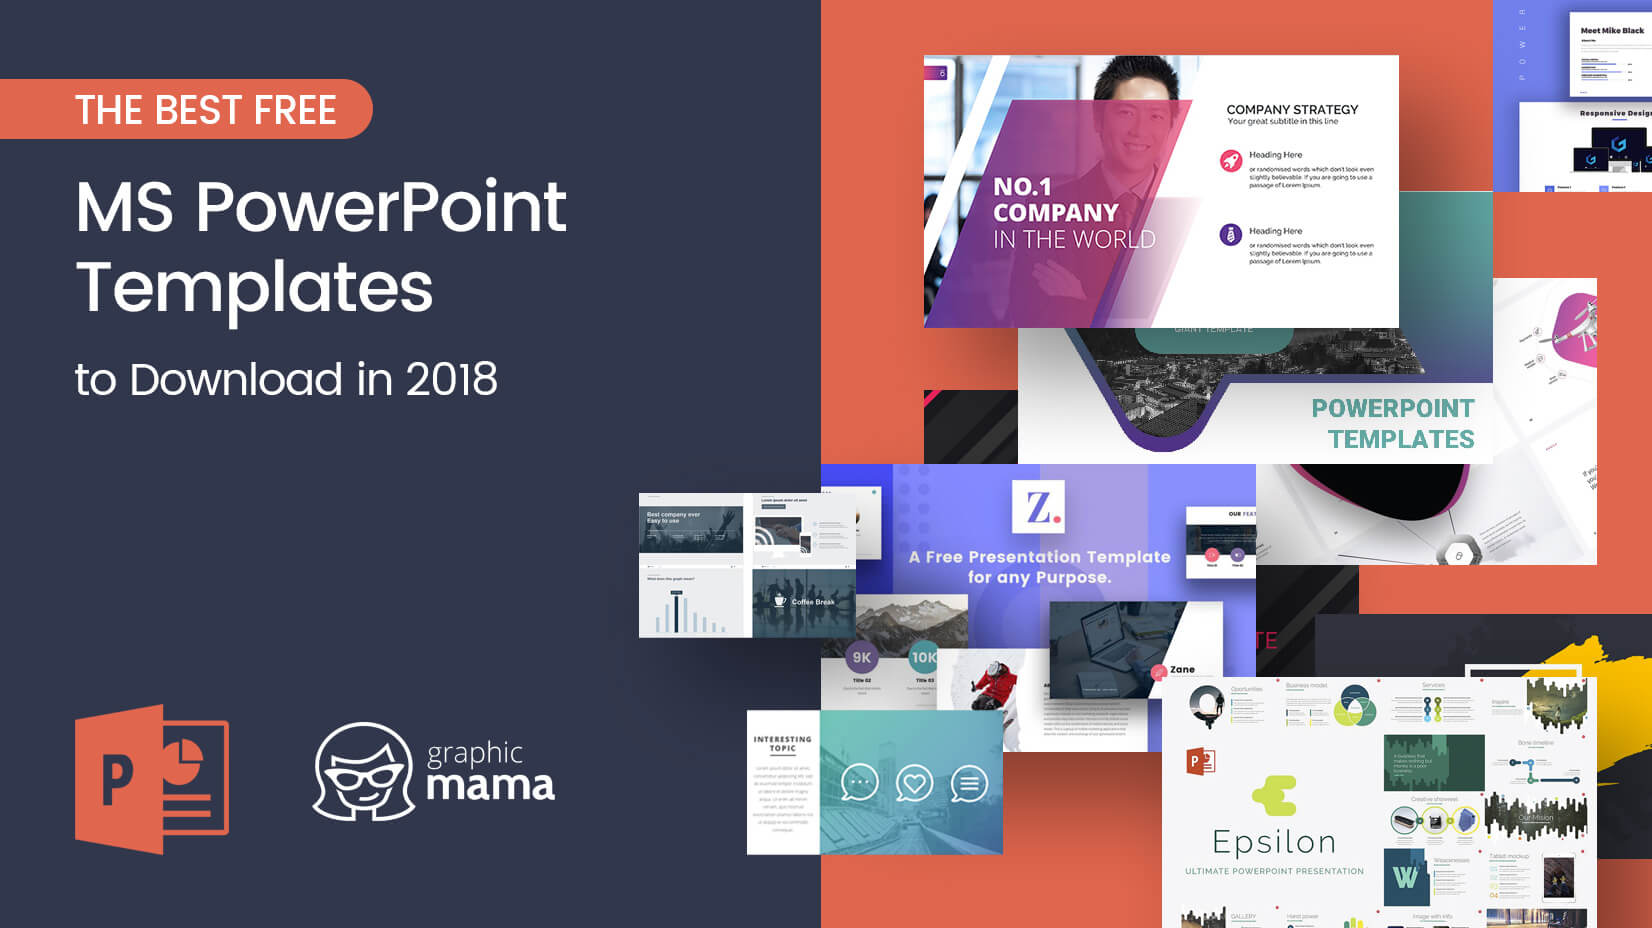 download free templates for powerpoint